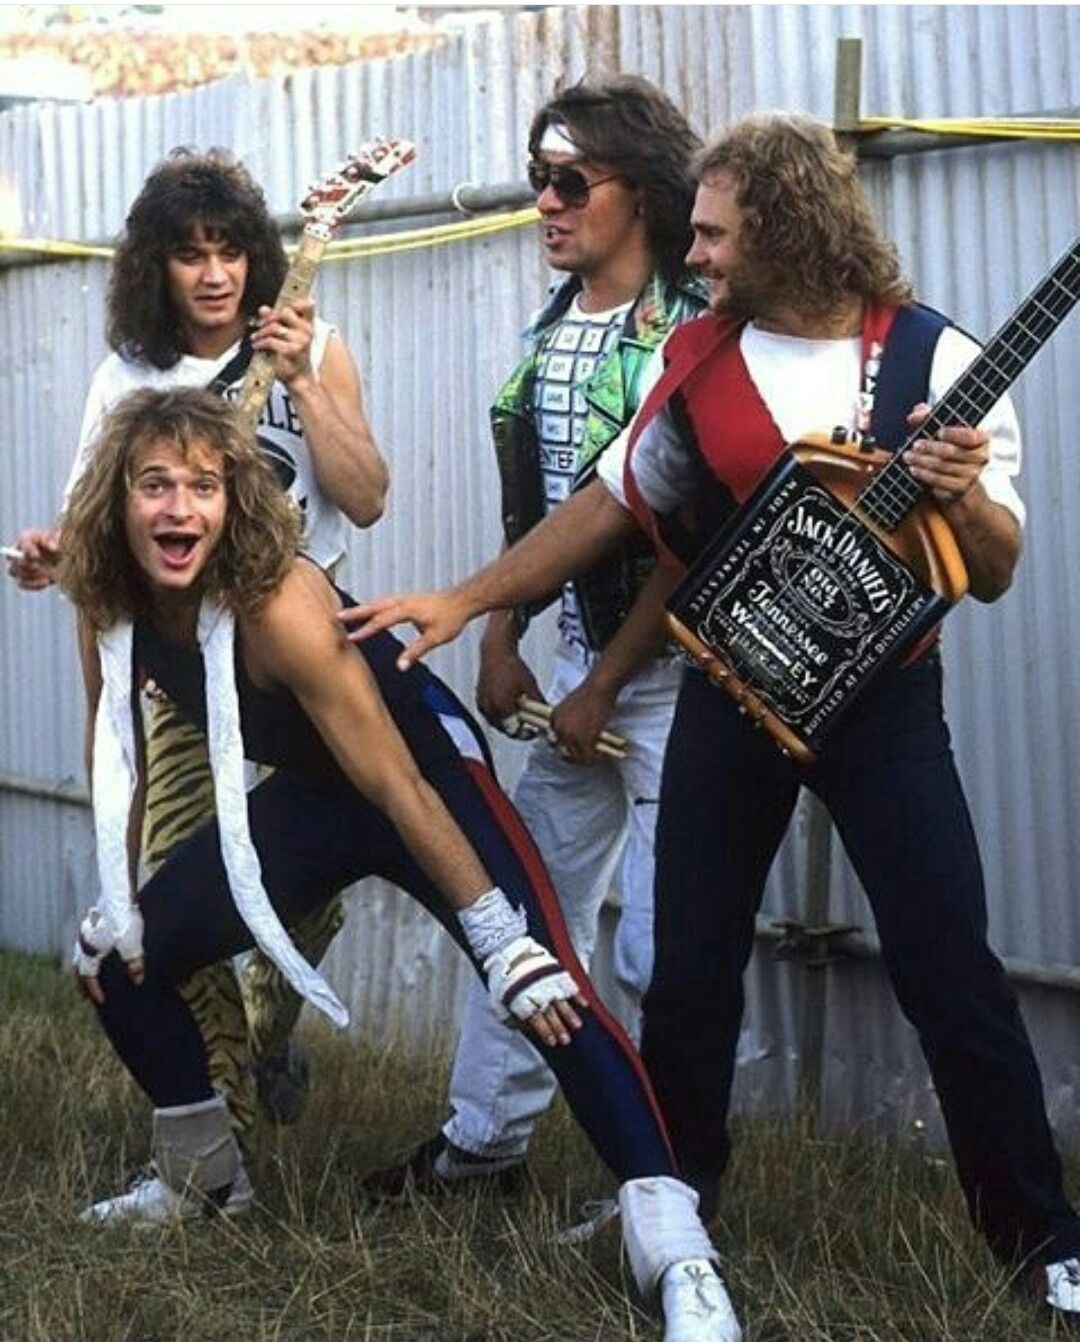 Pin By Jeff Wooley On Van Halen Van Halen Eddie Van Halen Alex Van Halen